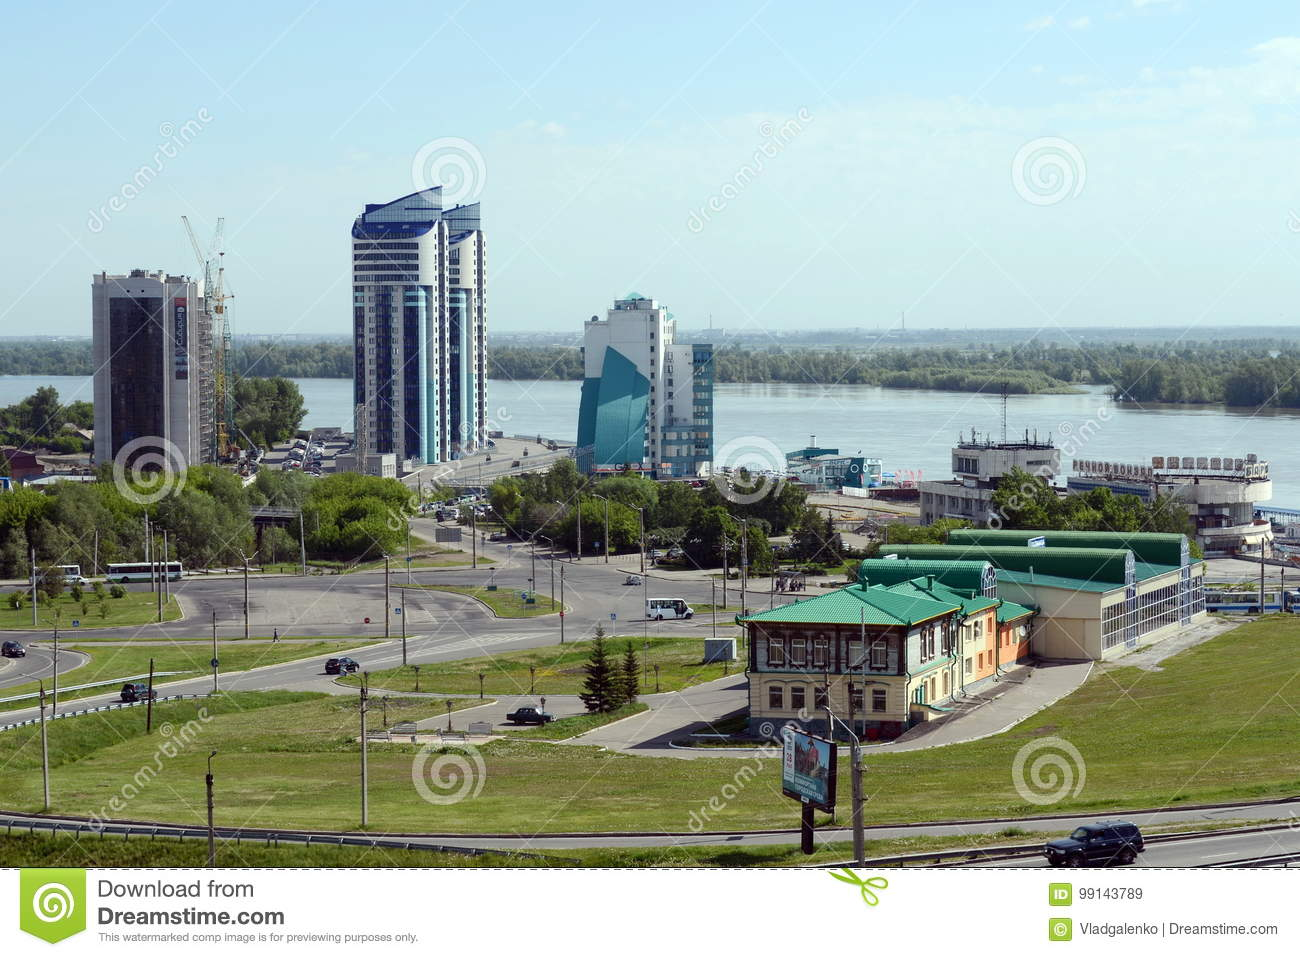 Where is Barnaul, in what area 88